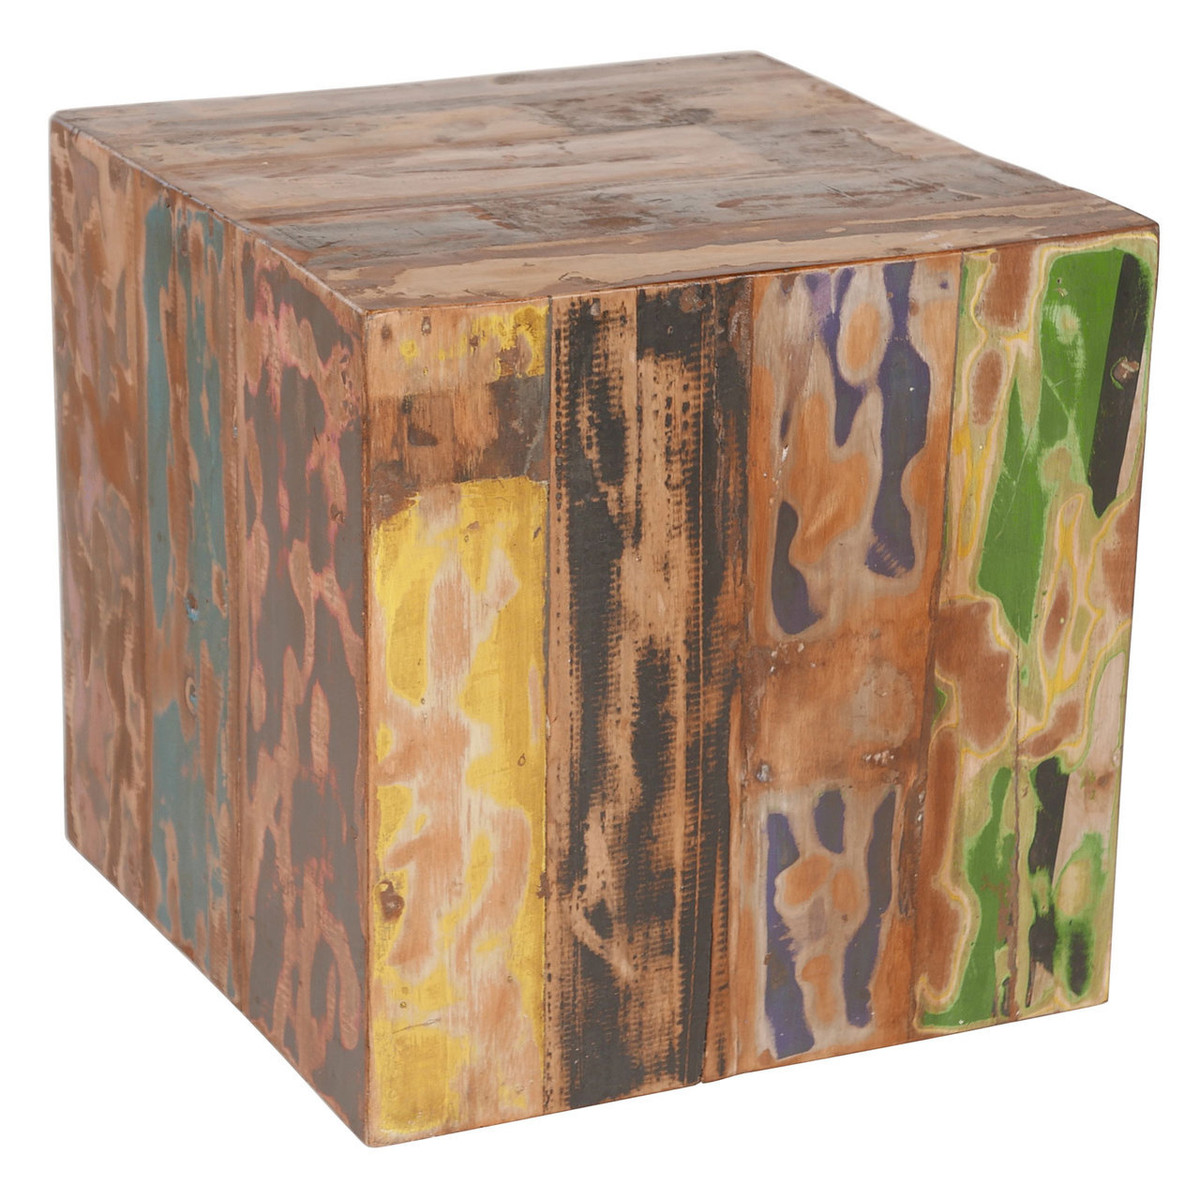 Reclaimed Boat Wood Cube Stool / Table